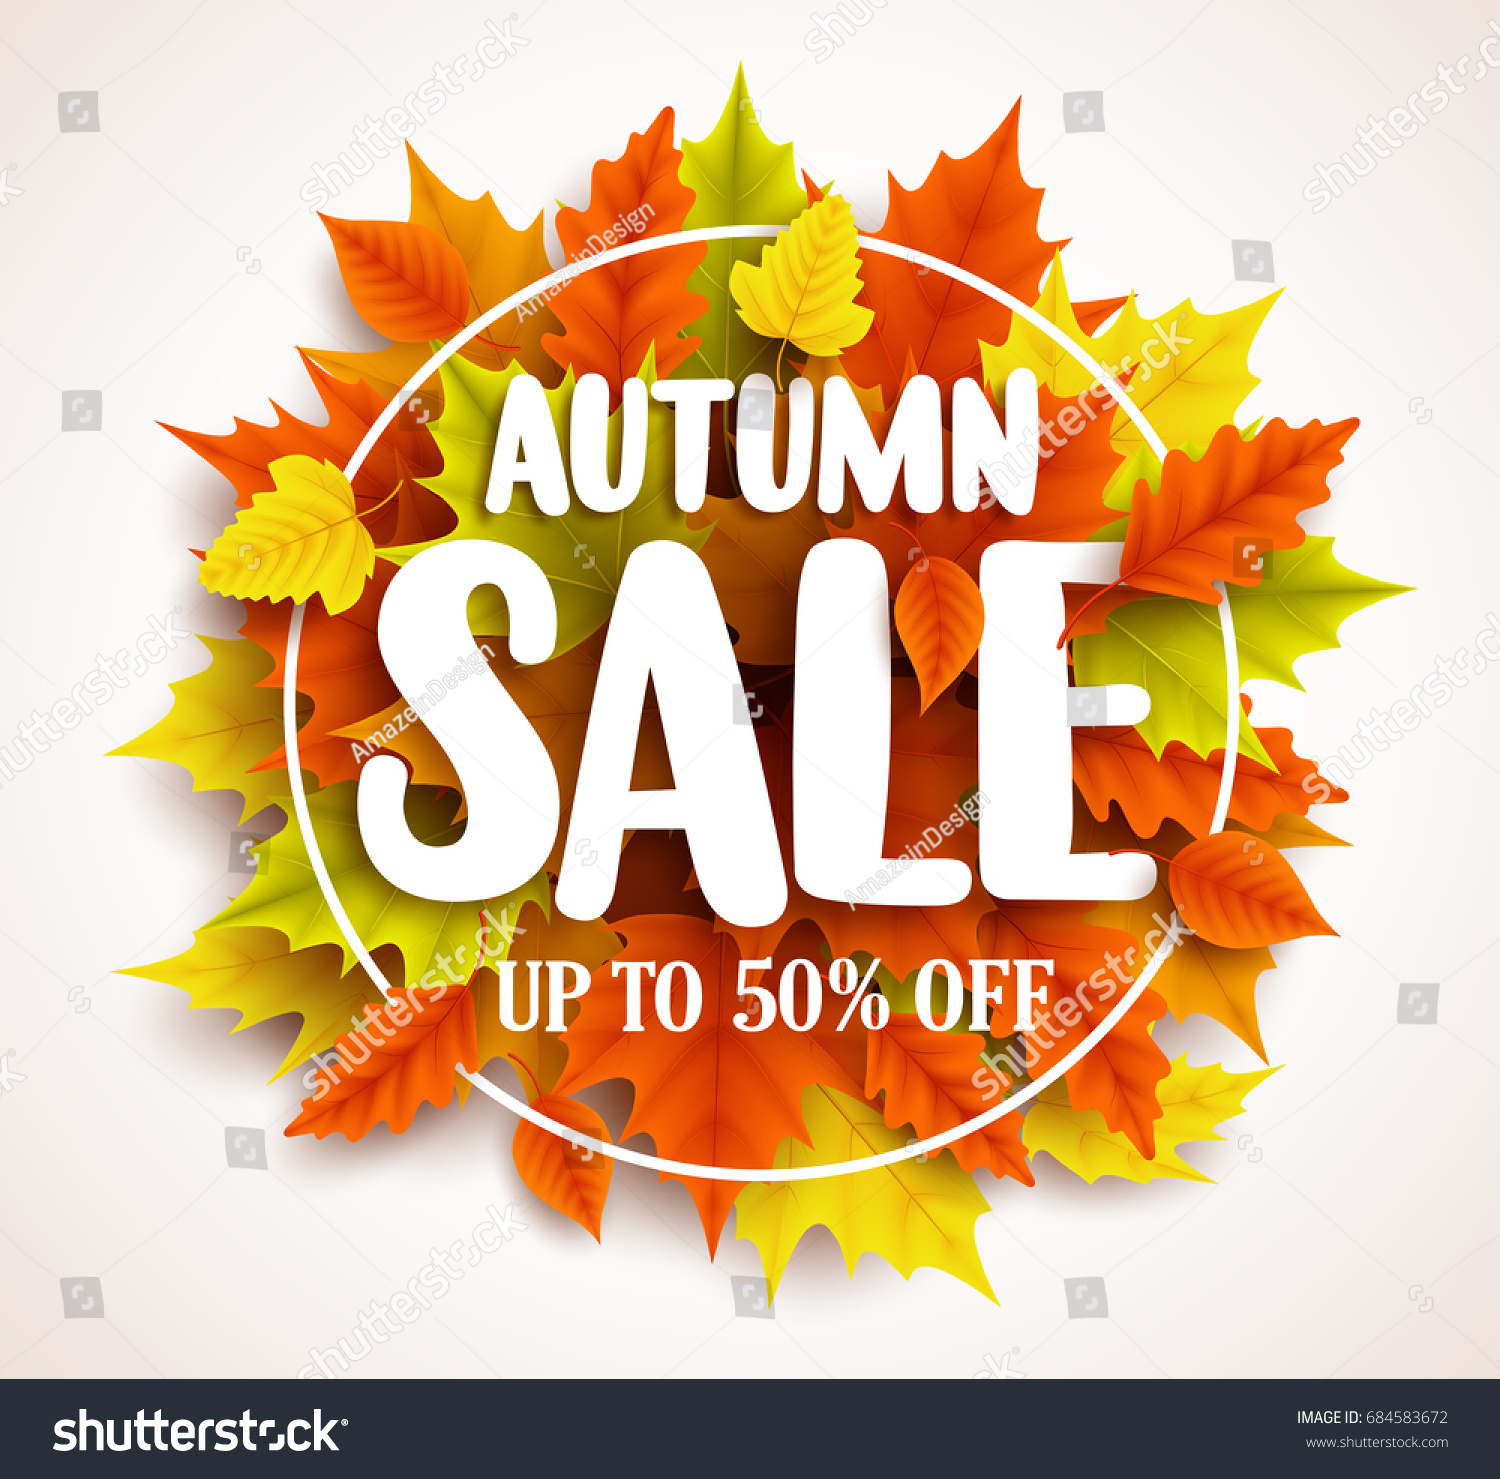 bright banner for autumn sale with autumn leaves on blue background